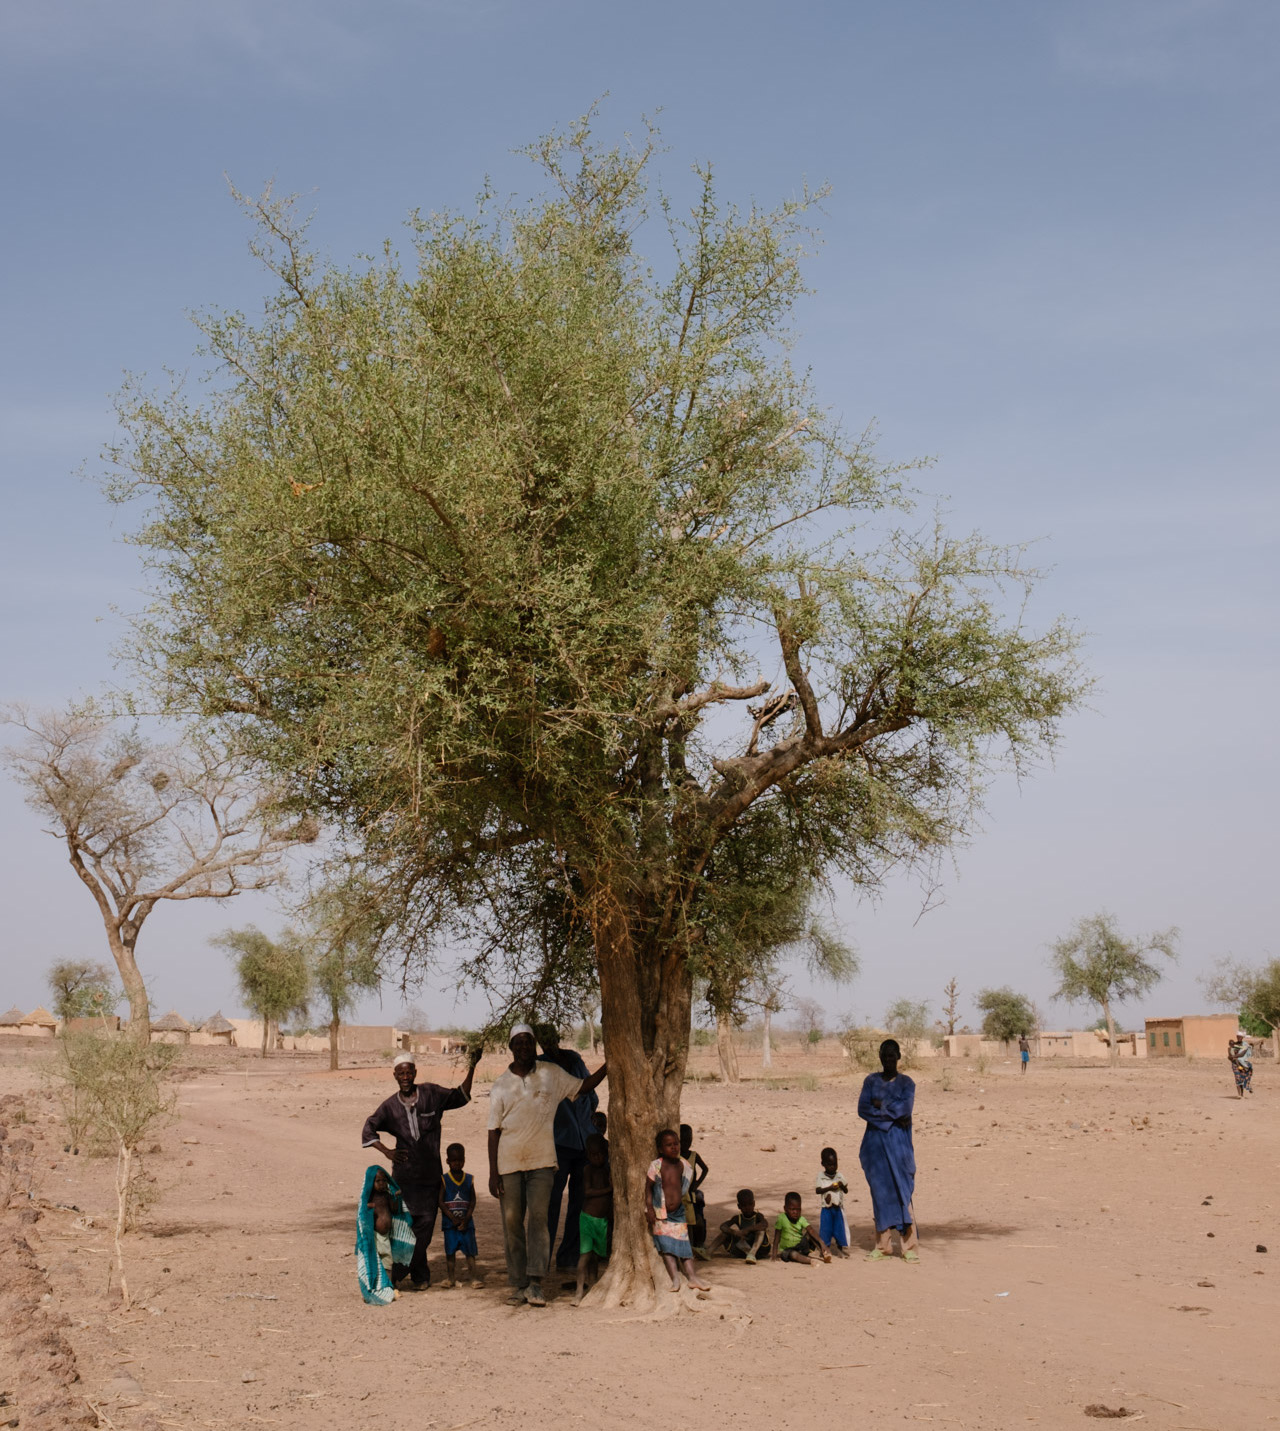 Burkina-Faso-Trees-Reforestation-Ecosia--35-of-38--1